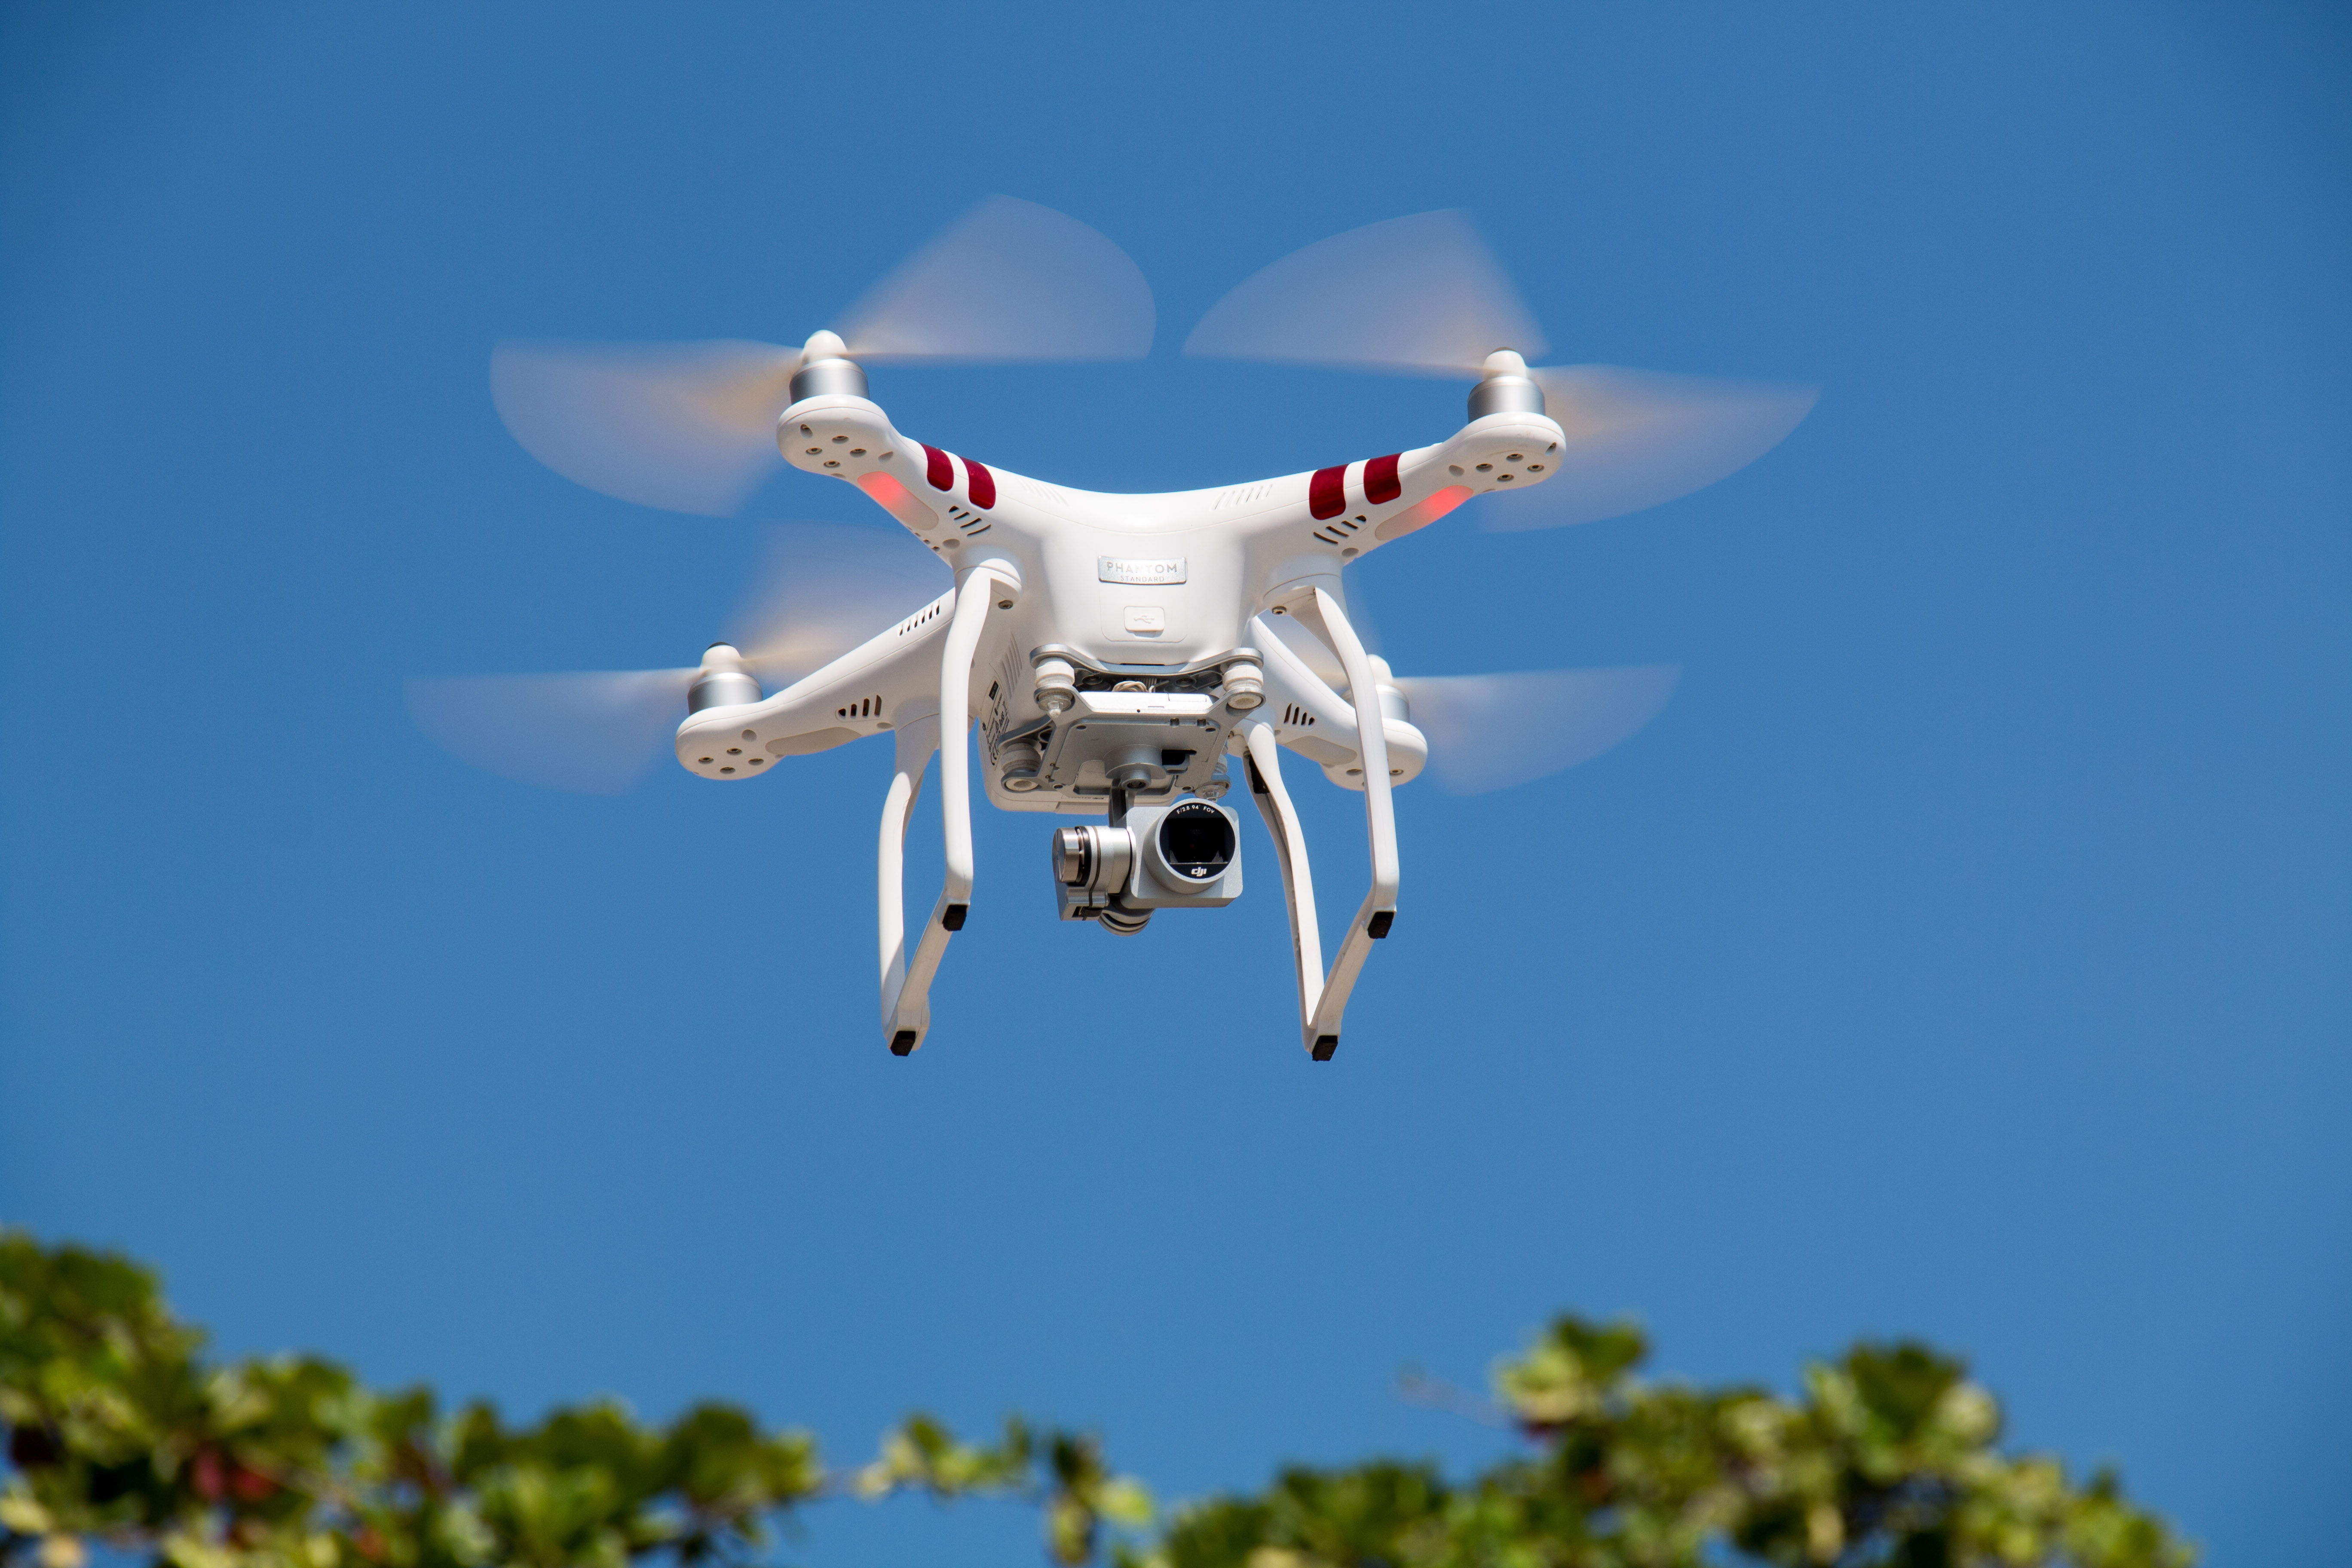 Drone flying against blue sky photo